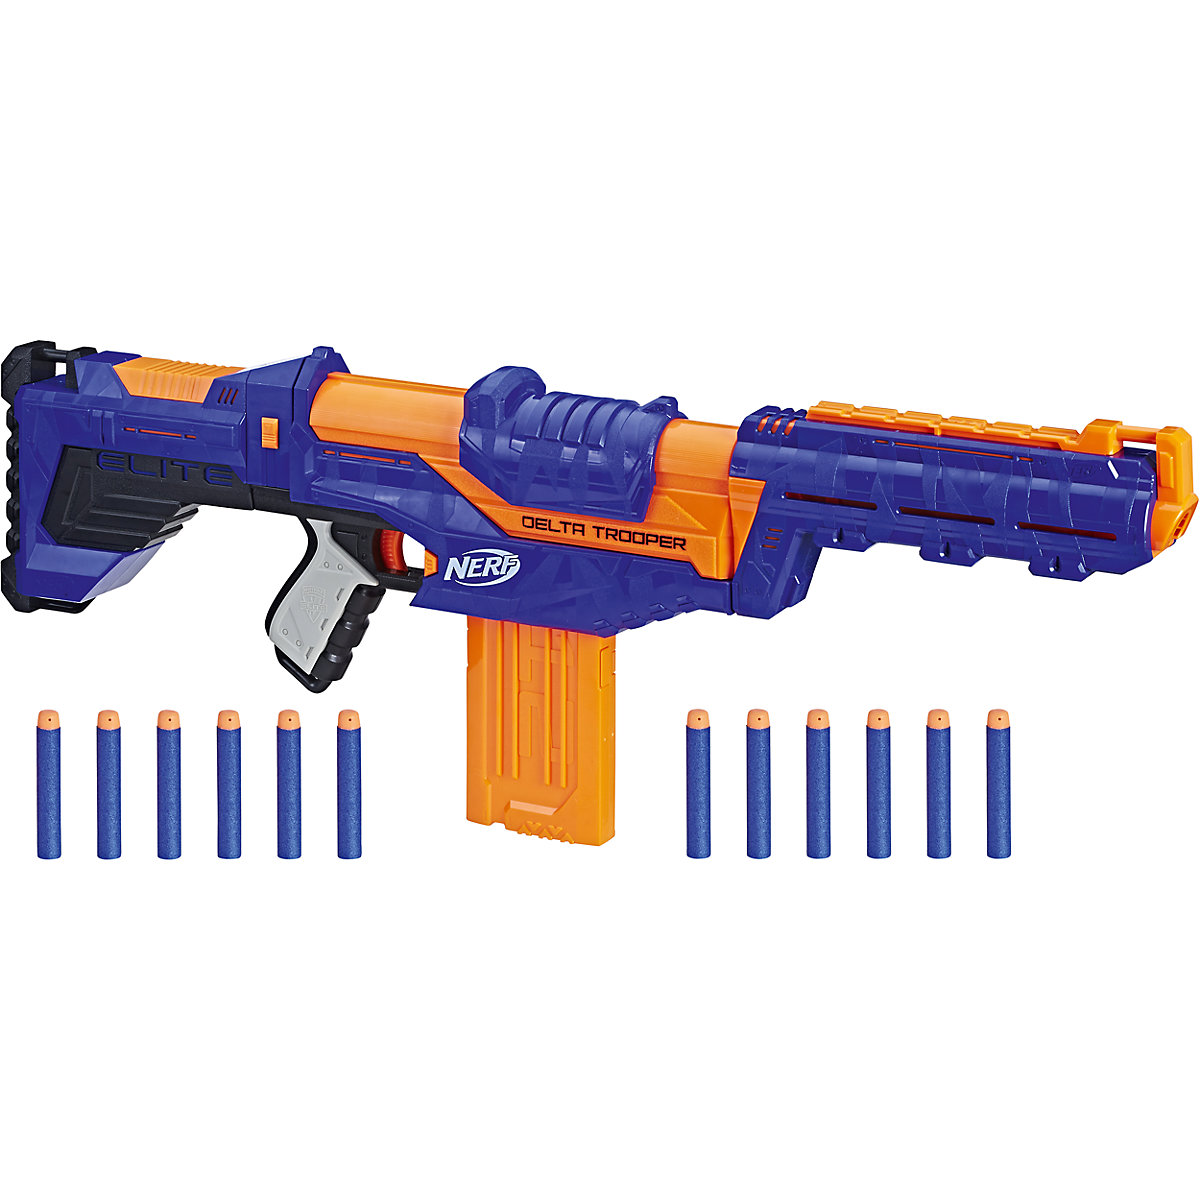 Toy Guns NERF 8376467 Children Kids Toy Gun Weapon Blasters Boys Shooting games Outdoor play new summer water sports baby kids inflatable swimming pool pvc portable swim family play pool children bath tub kids toy